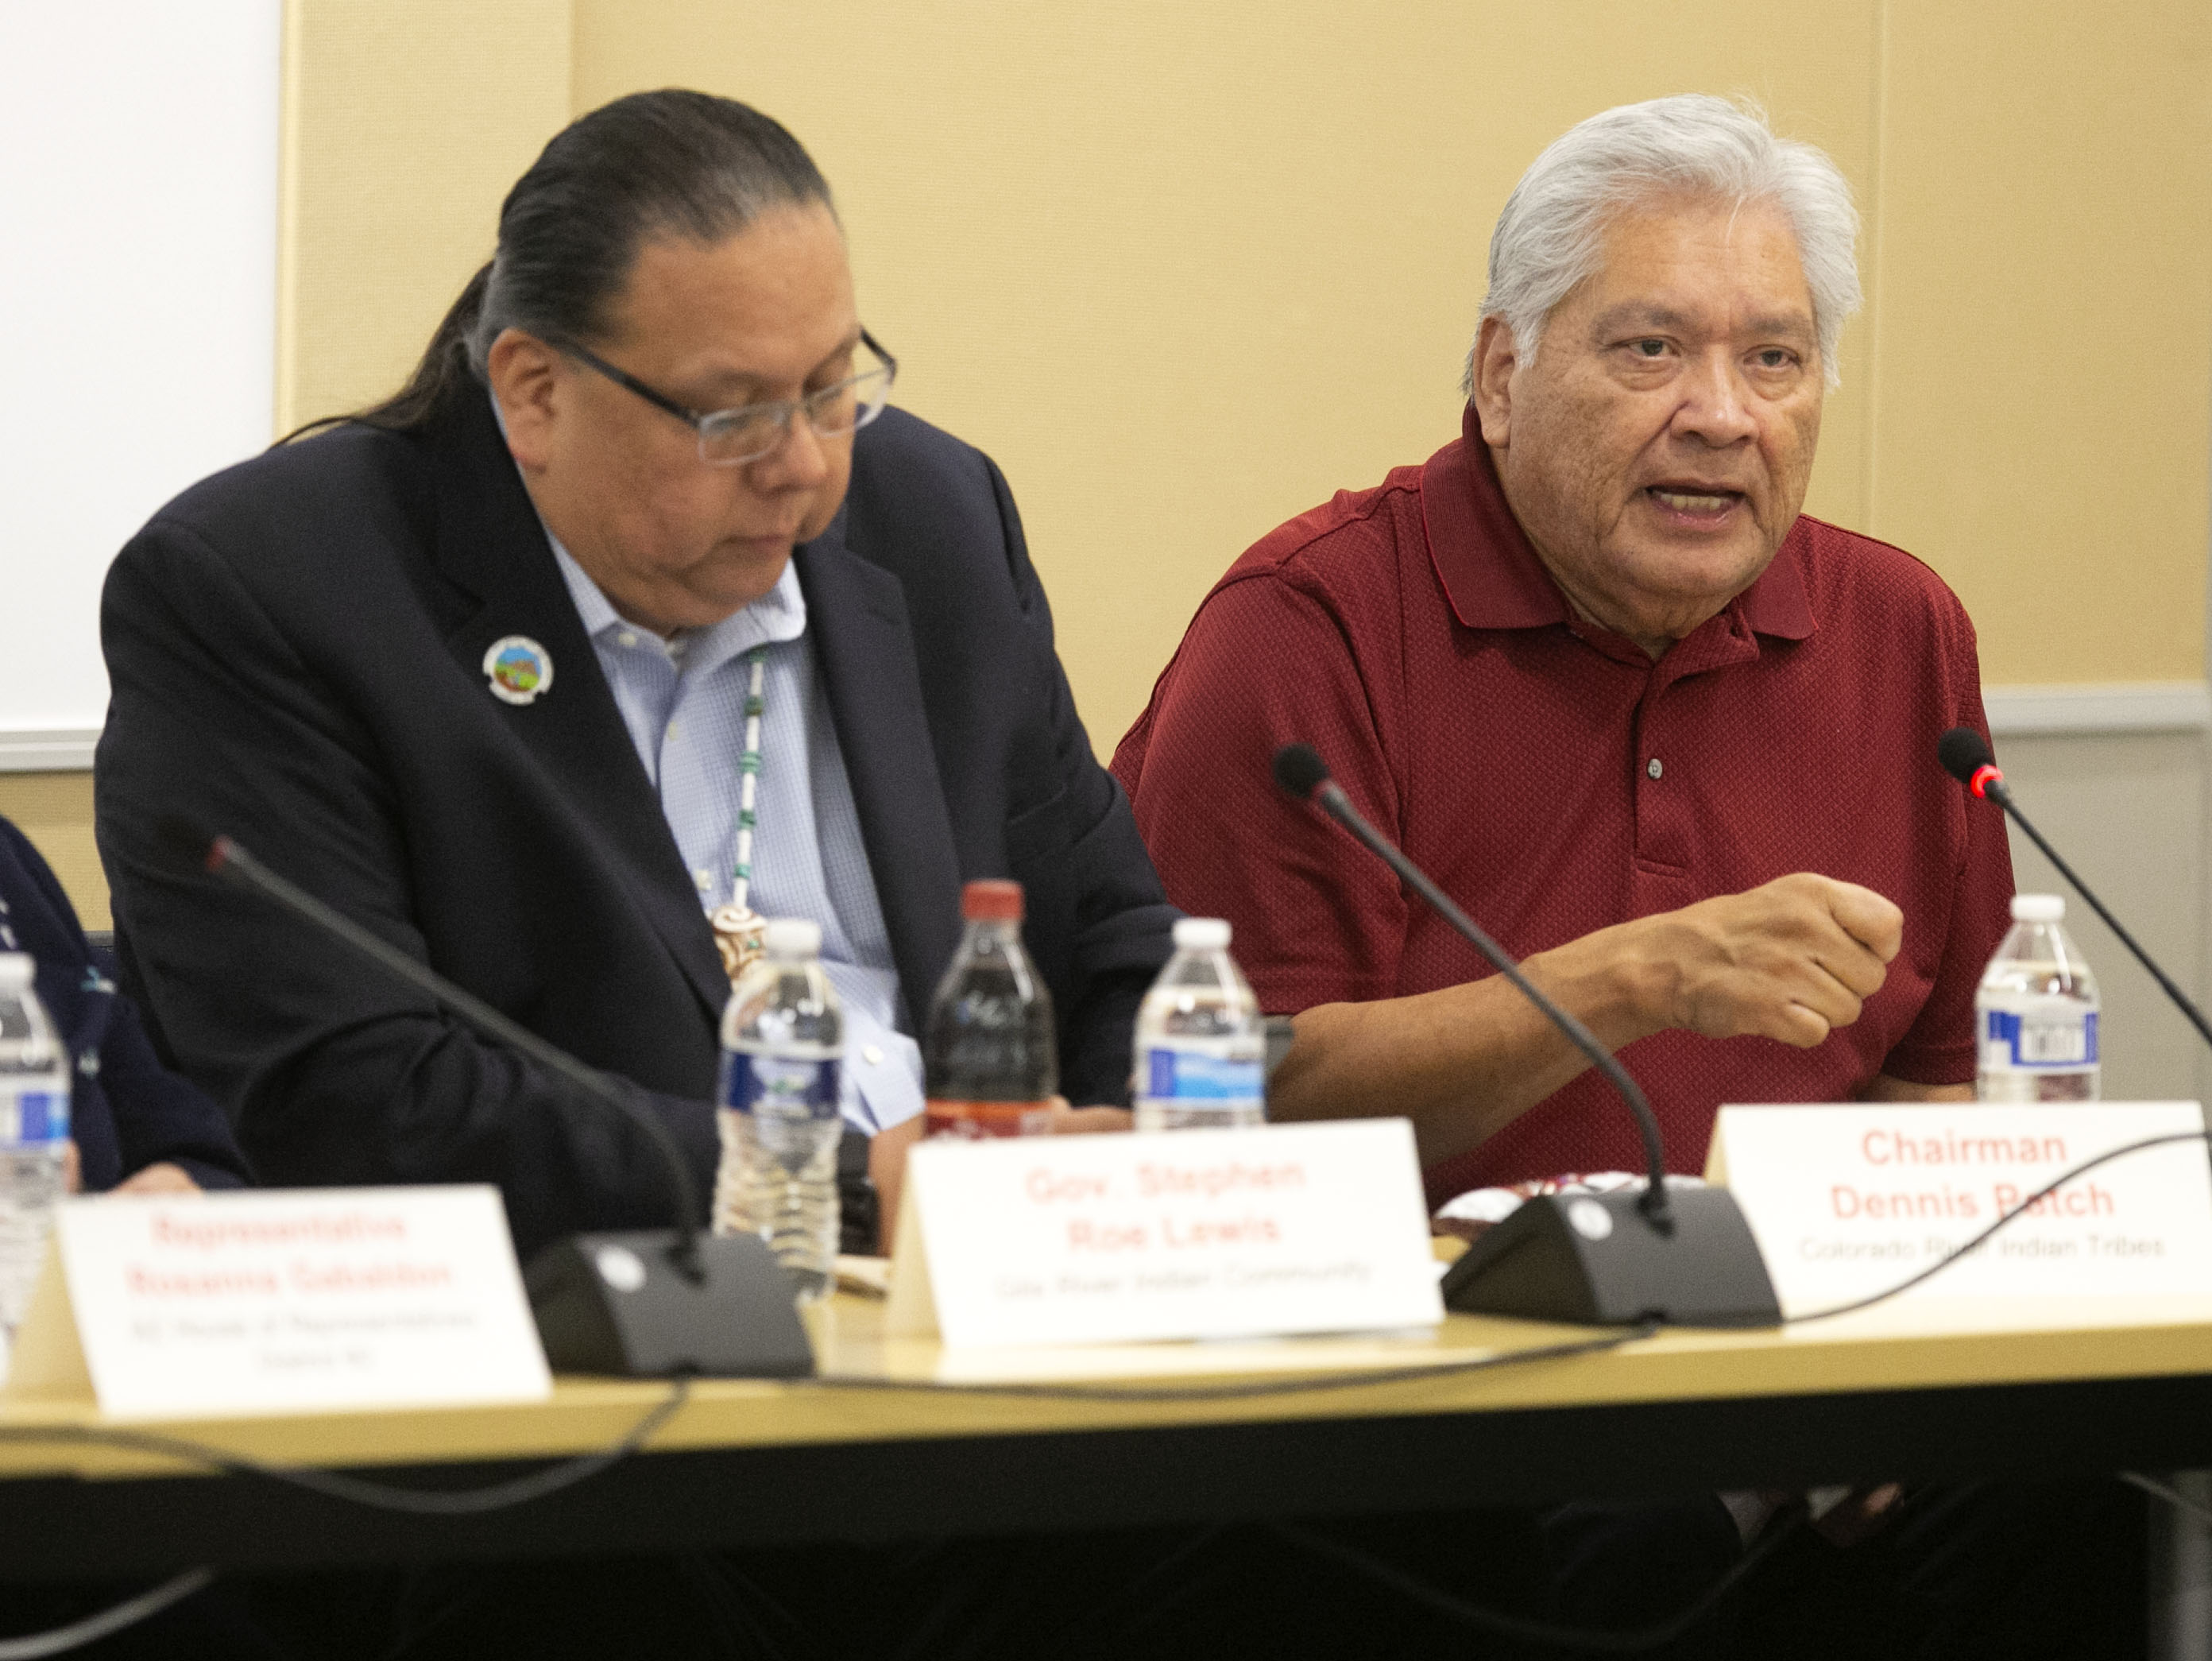 Chairman Dennis Patch (right) of the Colorado River Indian Tribes, speaks as Gov. Stephen Roe Lewis of the Gila River Indian Community speaks during the Arizona Lower Basin Drought Contingency Plan Steering Committee meeting to work on a drought contingency plan for the Colorado River at Central Arizona Project headquarters in Phoenix on November 29, 2018.